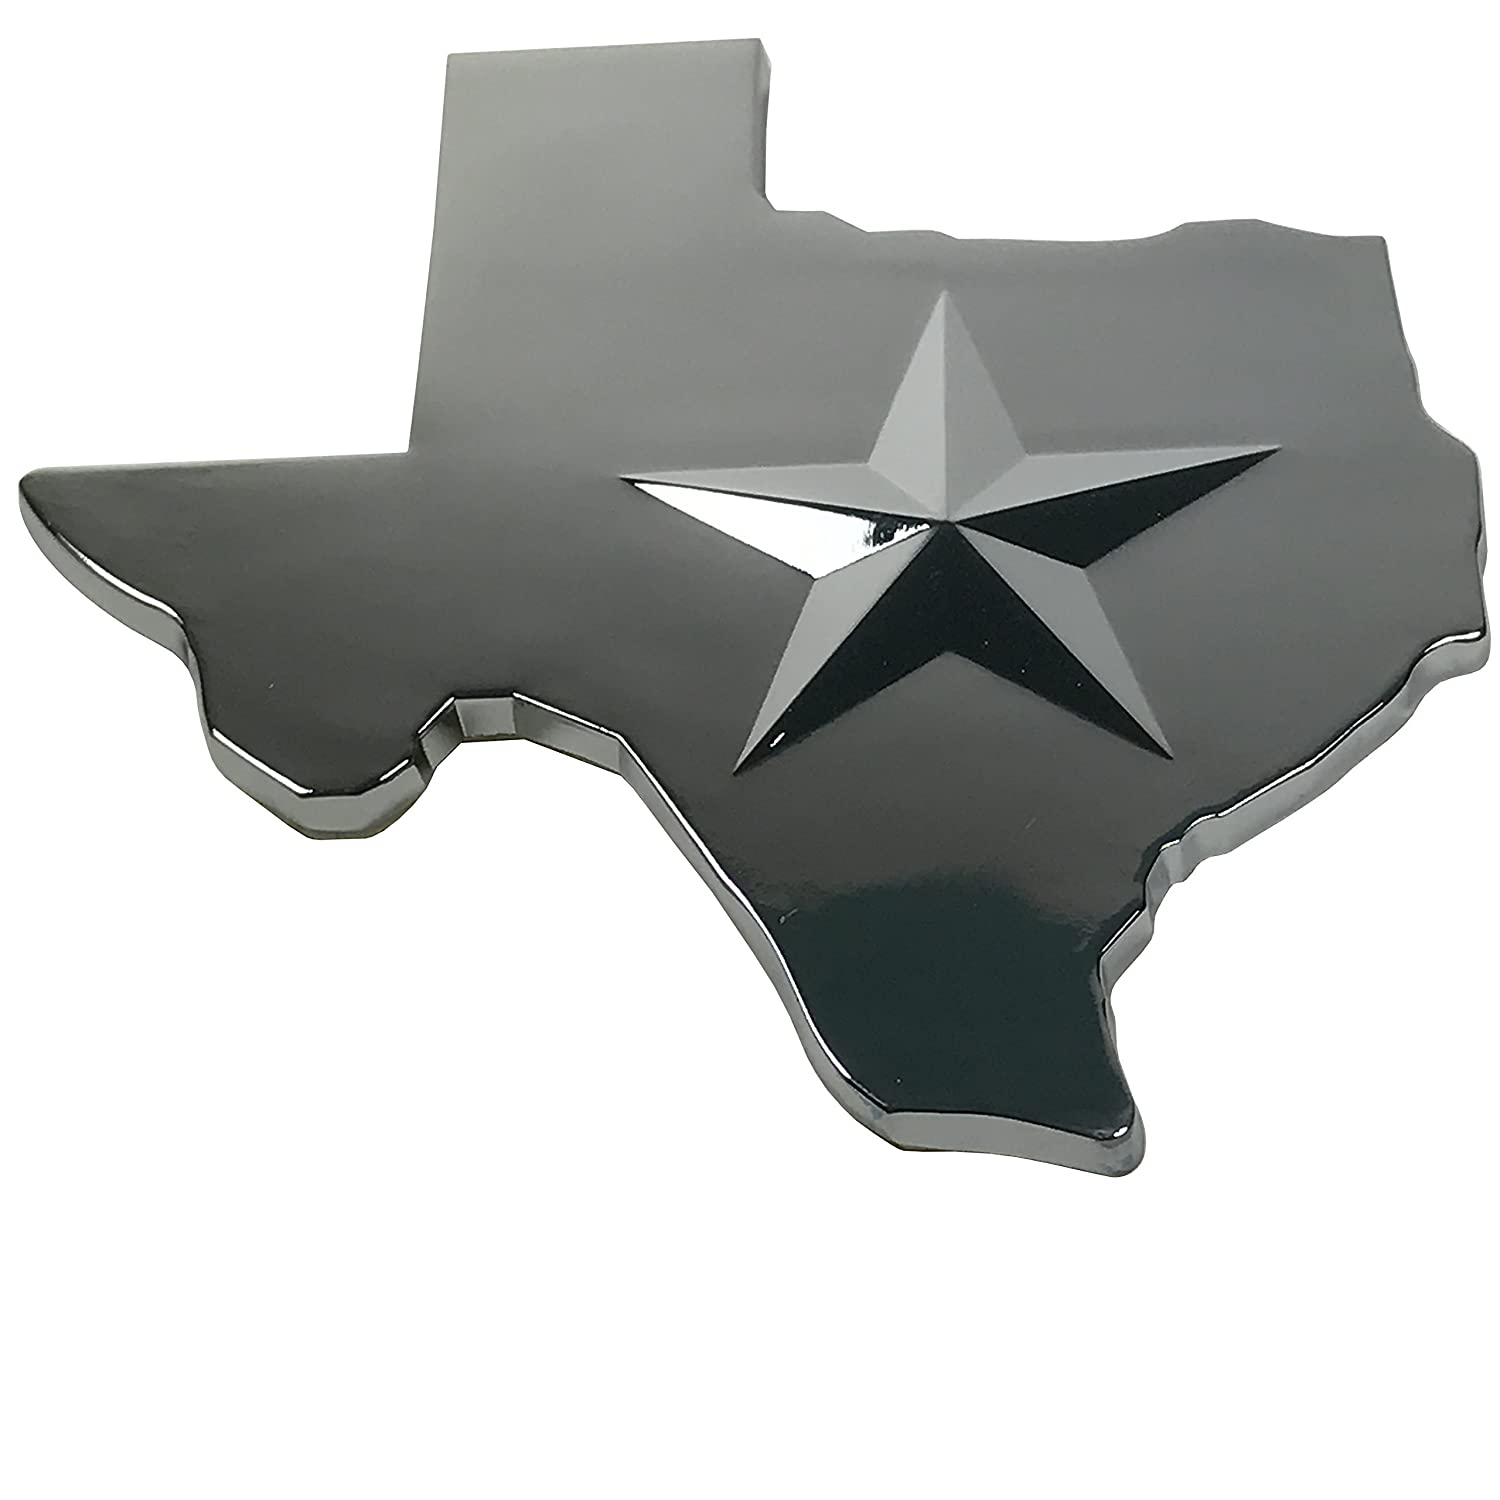 w// Silver Star in 3D Poker Weights Premium Texas Lone Star State METAL Auto Emblem